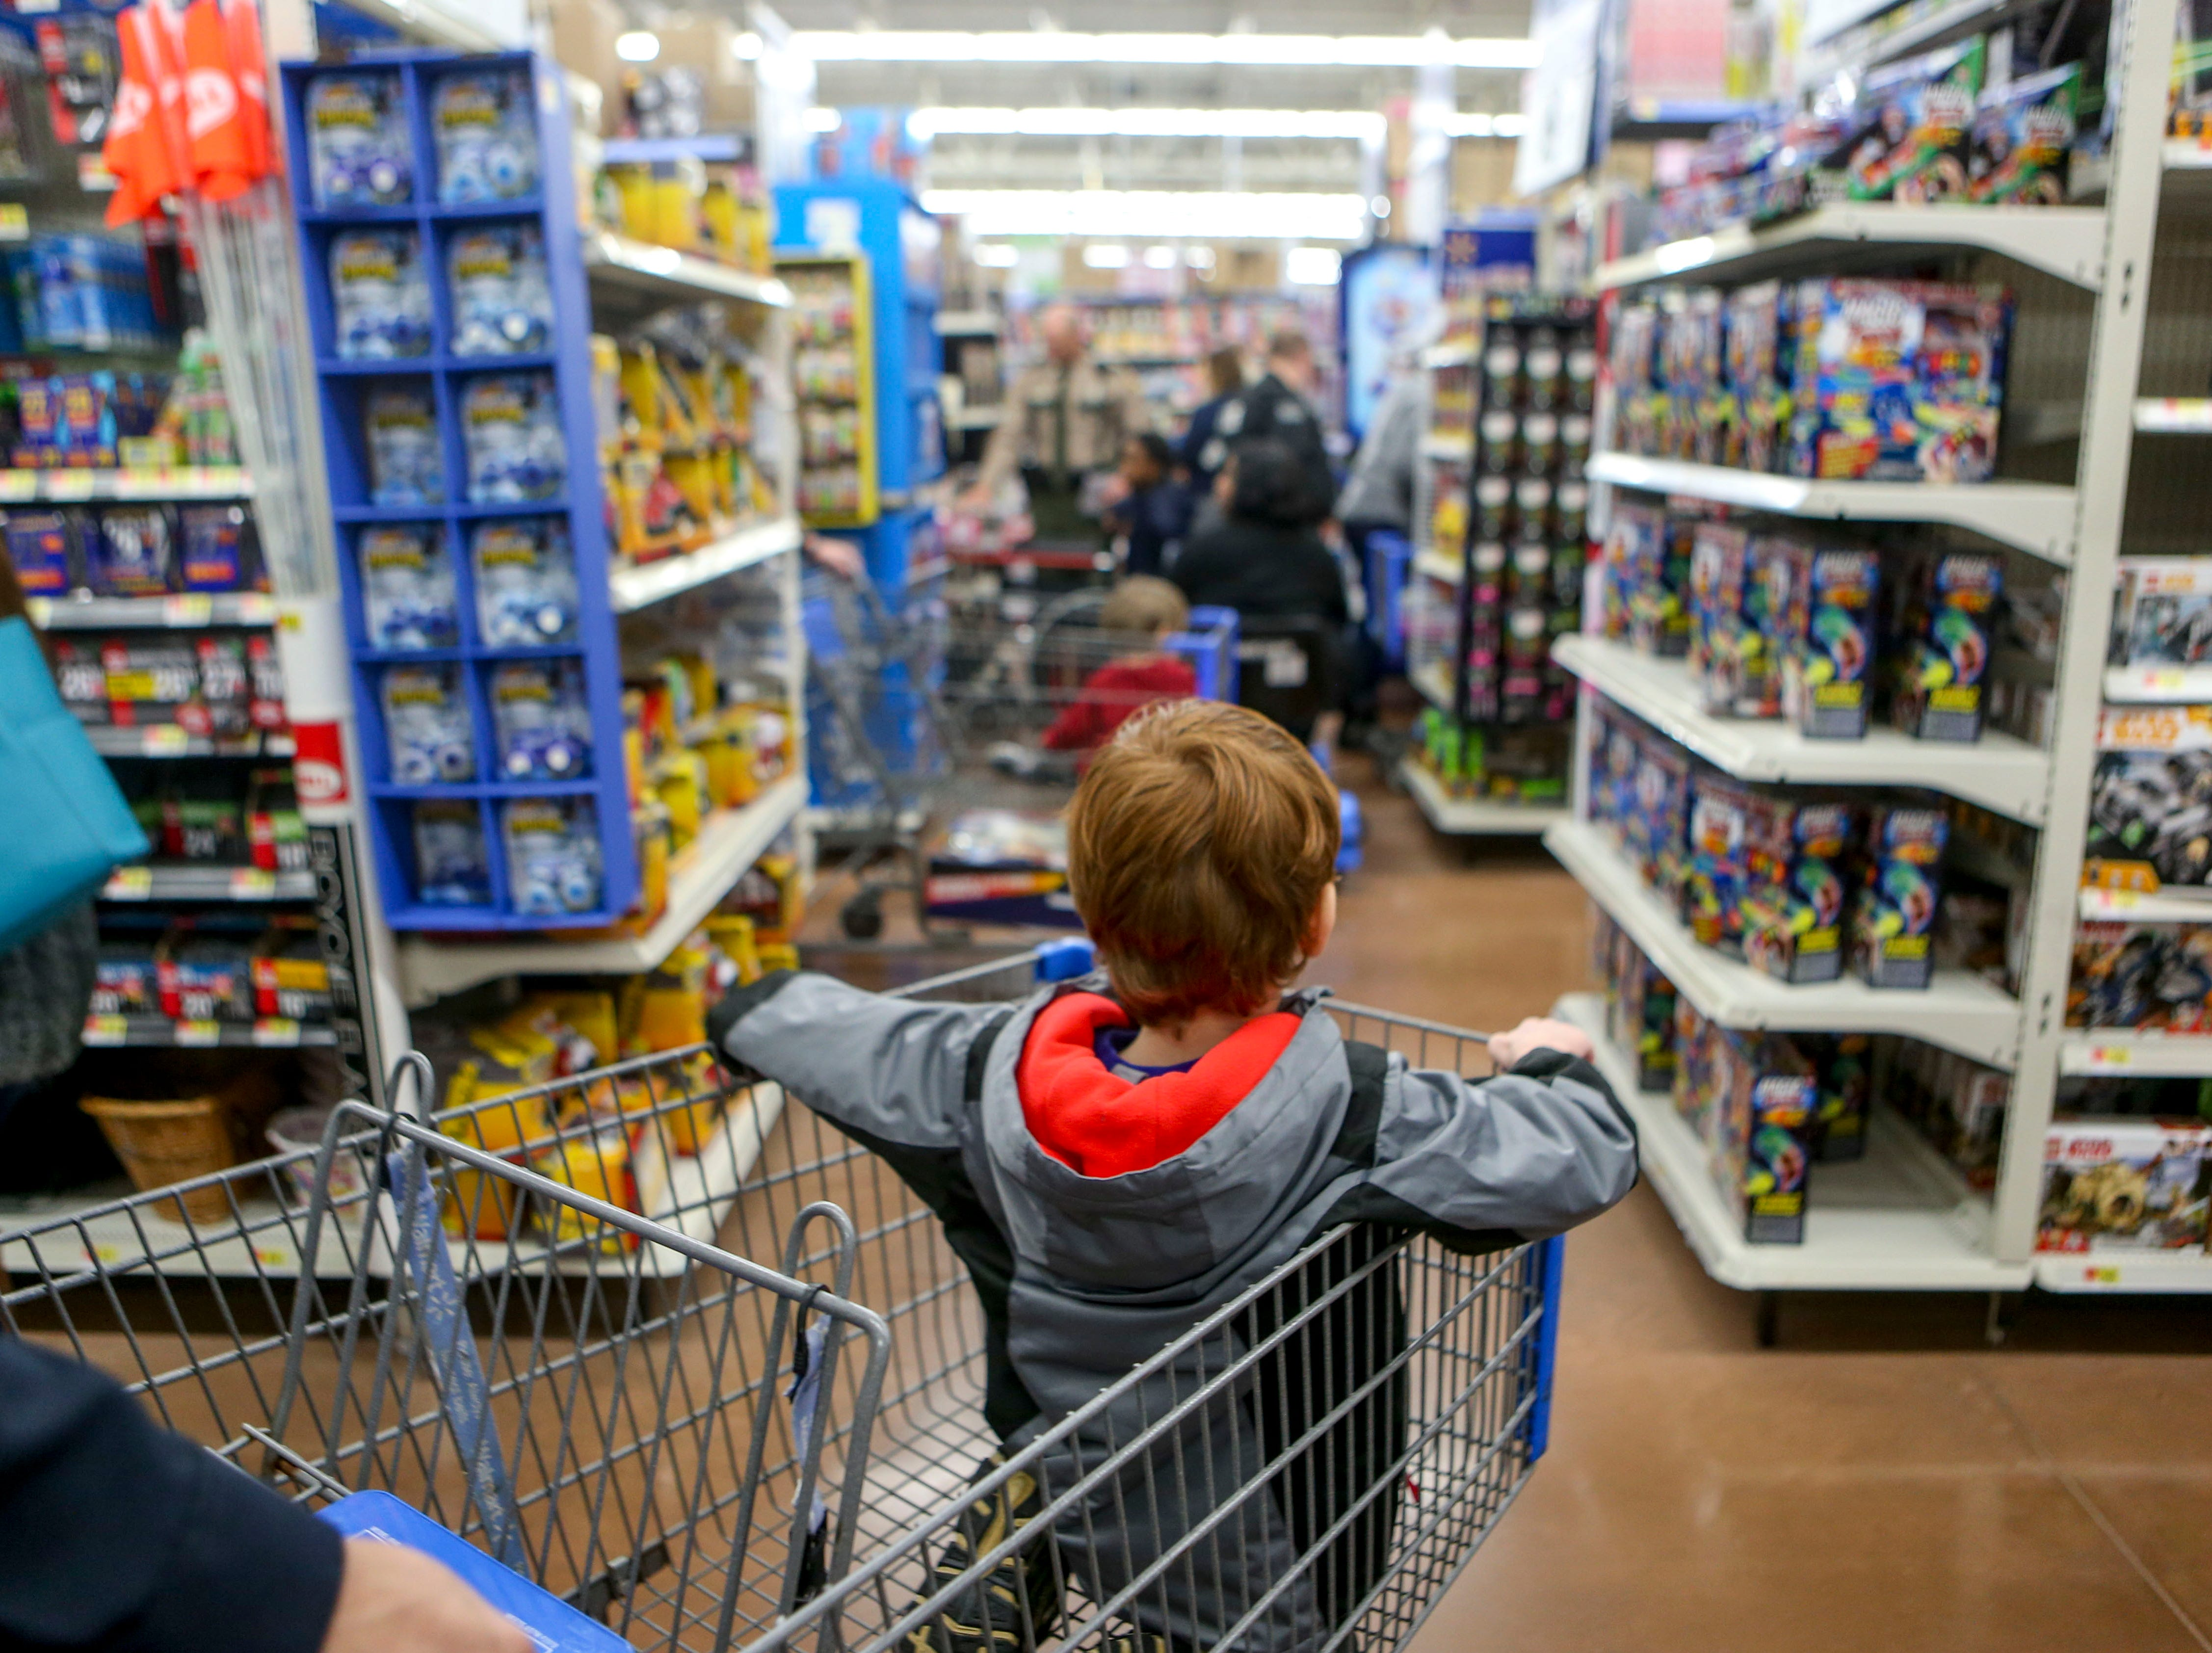 A boy looks out over the vast expanse of toys in front of him, with an empty cart and a balance to spend during shopping time for the annual Shop with a Cop program at Walmart in Milan, Tenn., on Thursday, Dec. 13, 2018.